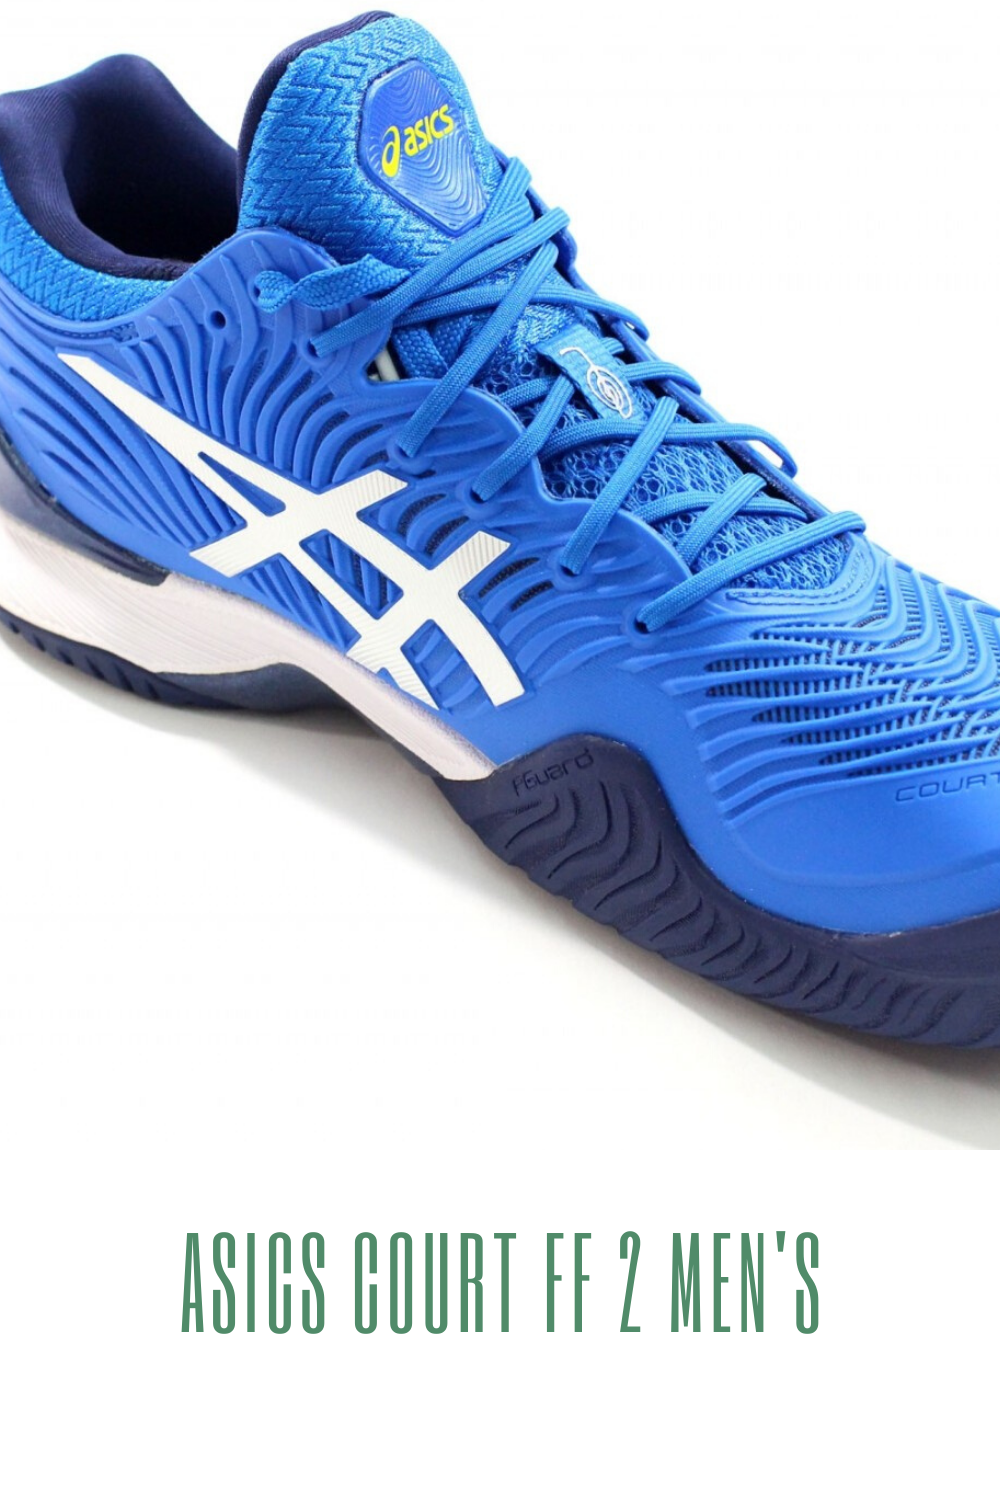 New Tennis Shoes Nole Shoe In 2020 Asics Tennis Shoes Tennis Clothes Tennis Shoes